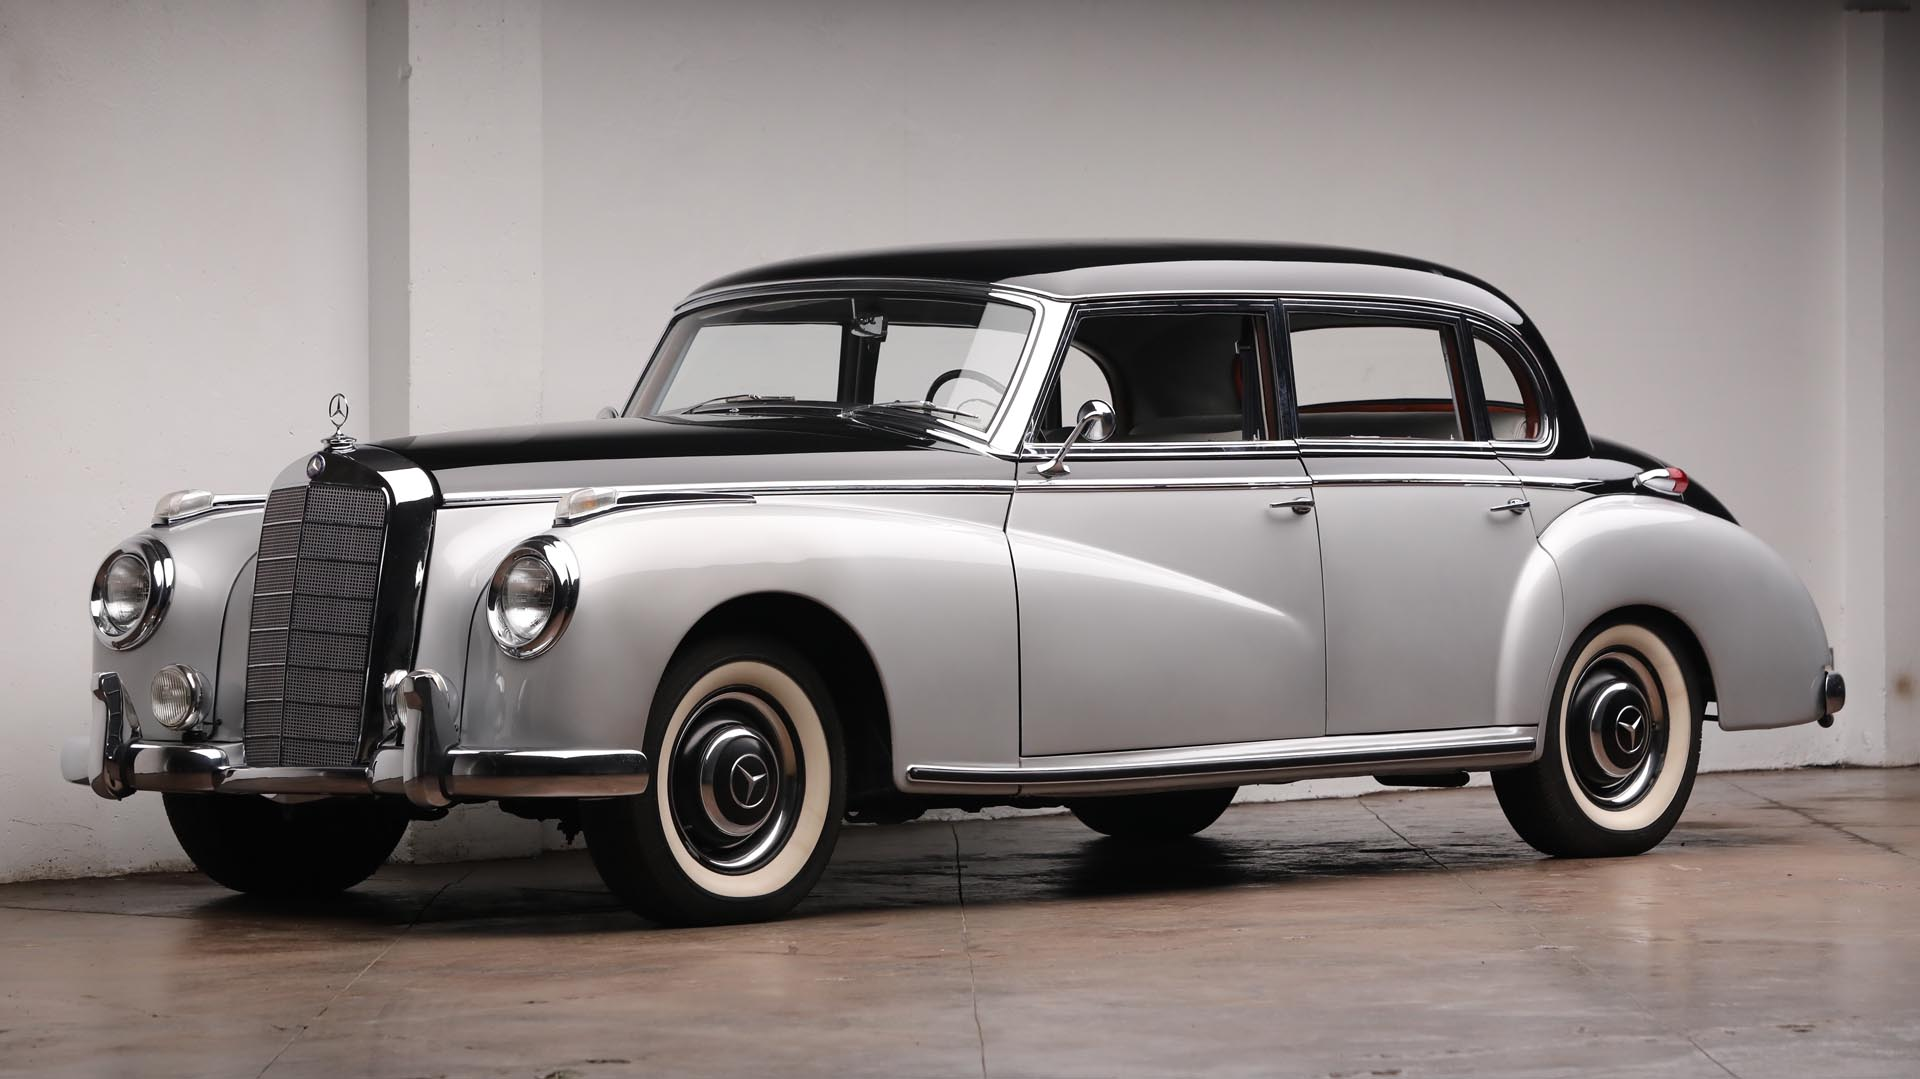 1952 Mercedes-Benz 300a 'Adenauer' Sedan